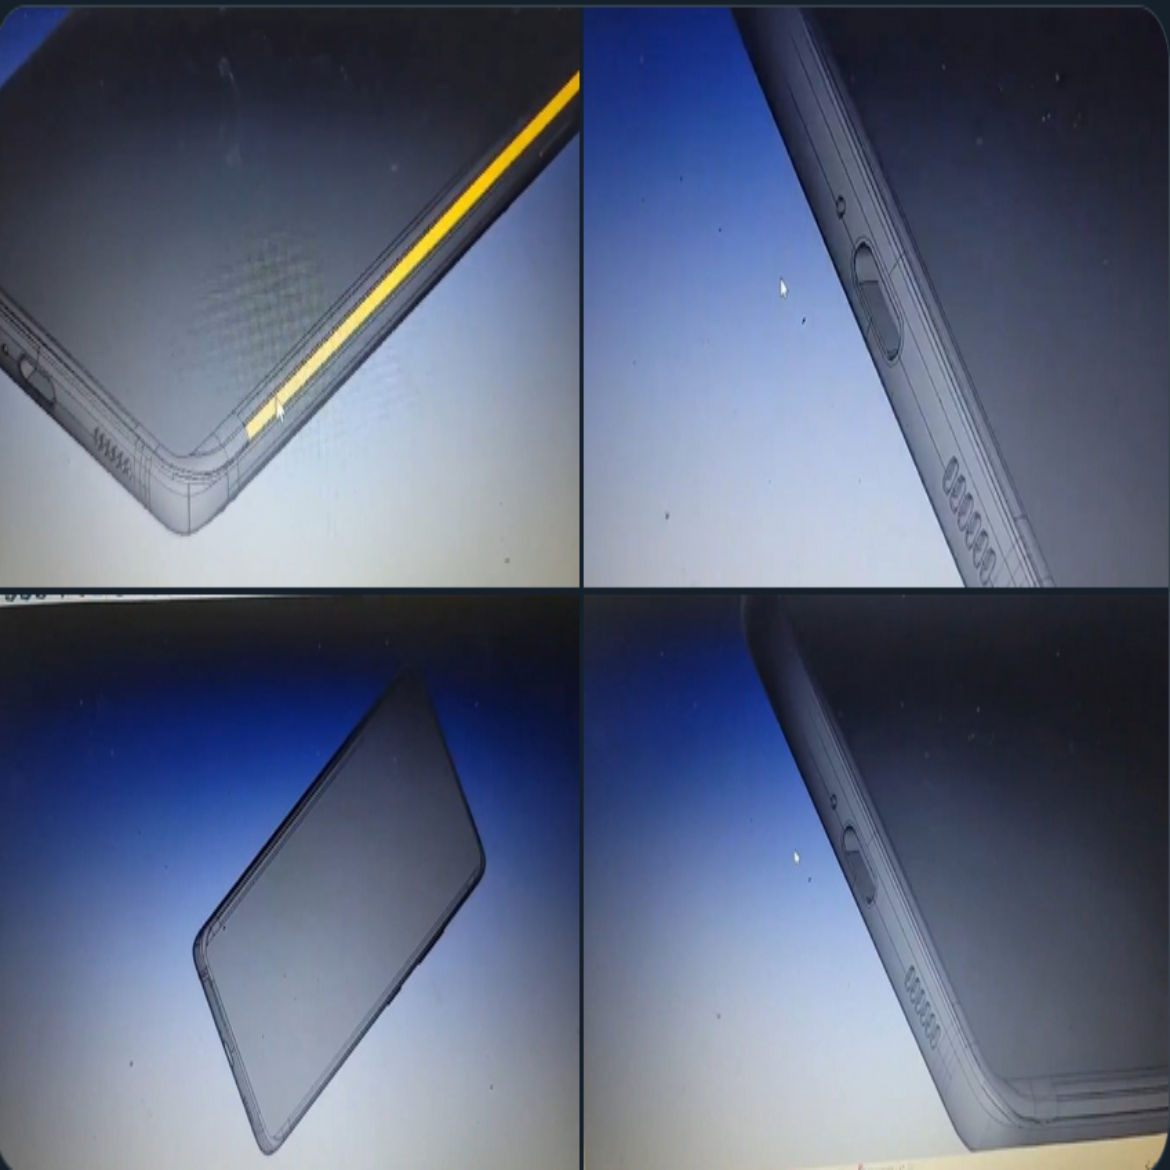 Very thin bezels, but do they still have the pinhole selfie cam? Through-screen cameras…